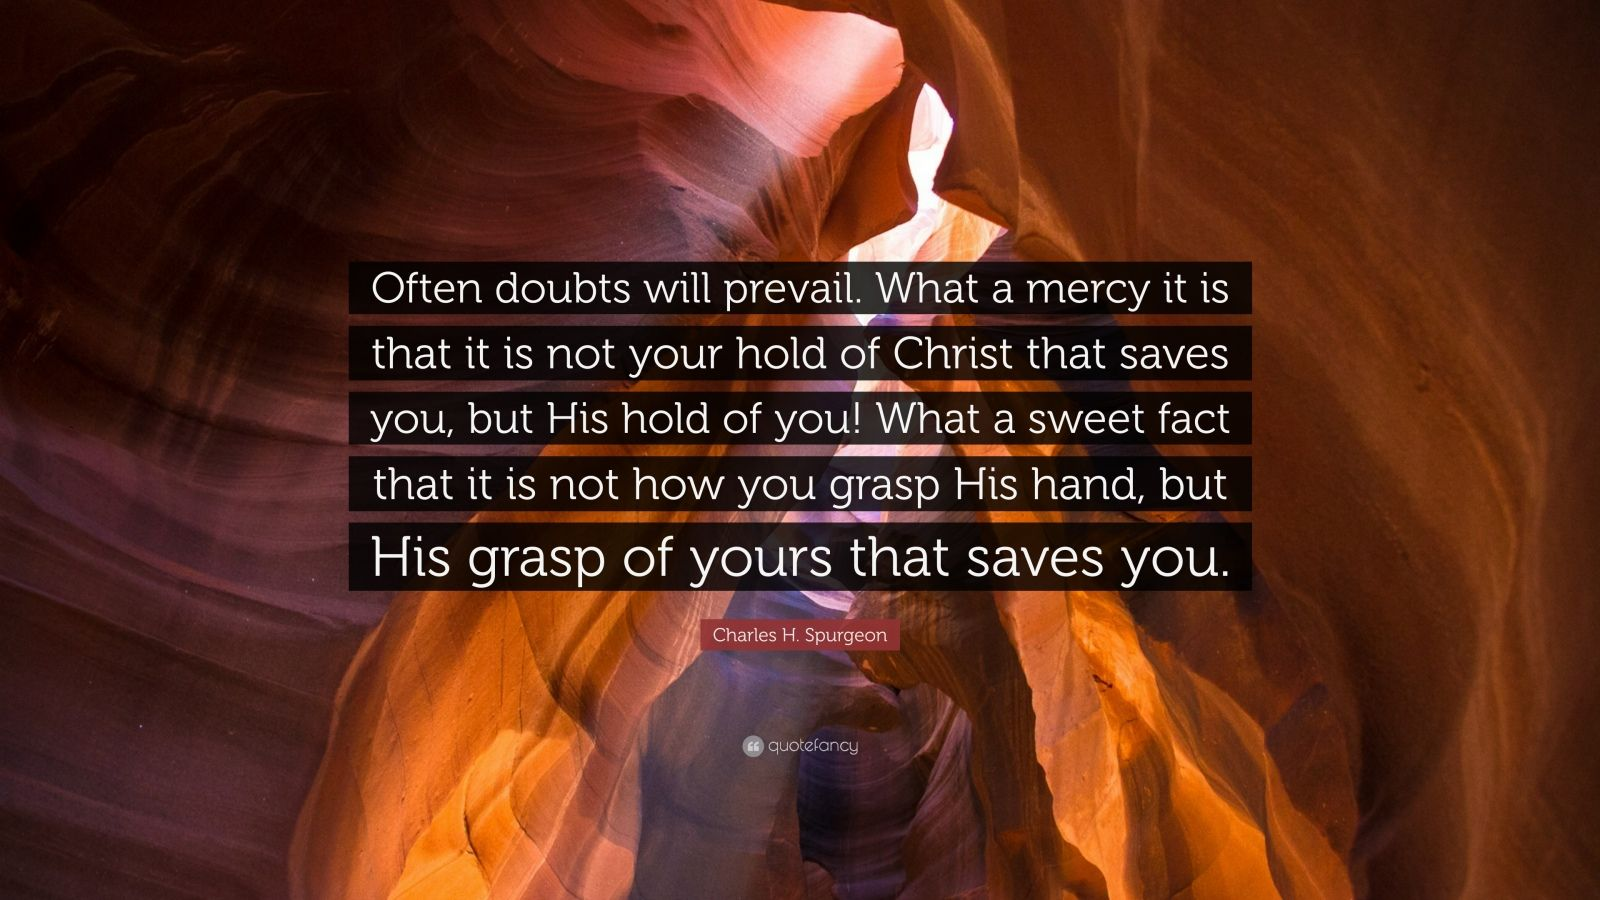 "Charles H. Spurgeon Quote: ""Often doubts will prevail. What a mercy it is that it is not your hold of Christ that saves you, but His hold of you! What a sweet fact that it is not how you grasp His hand, but His grasp of yours that saves you."""